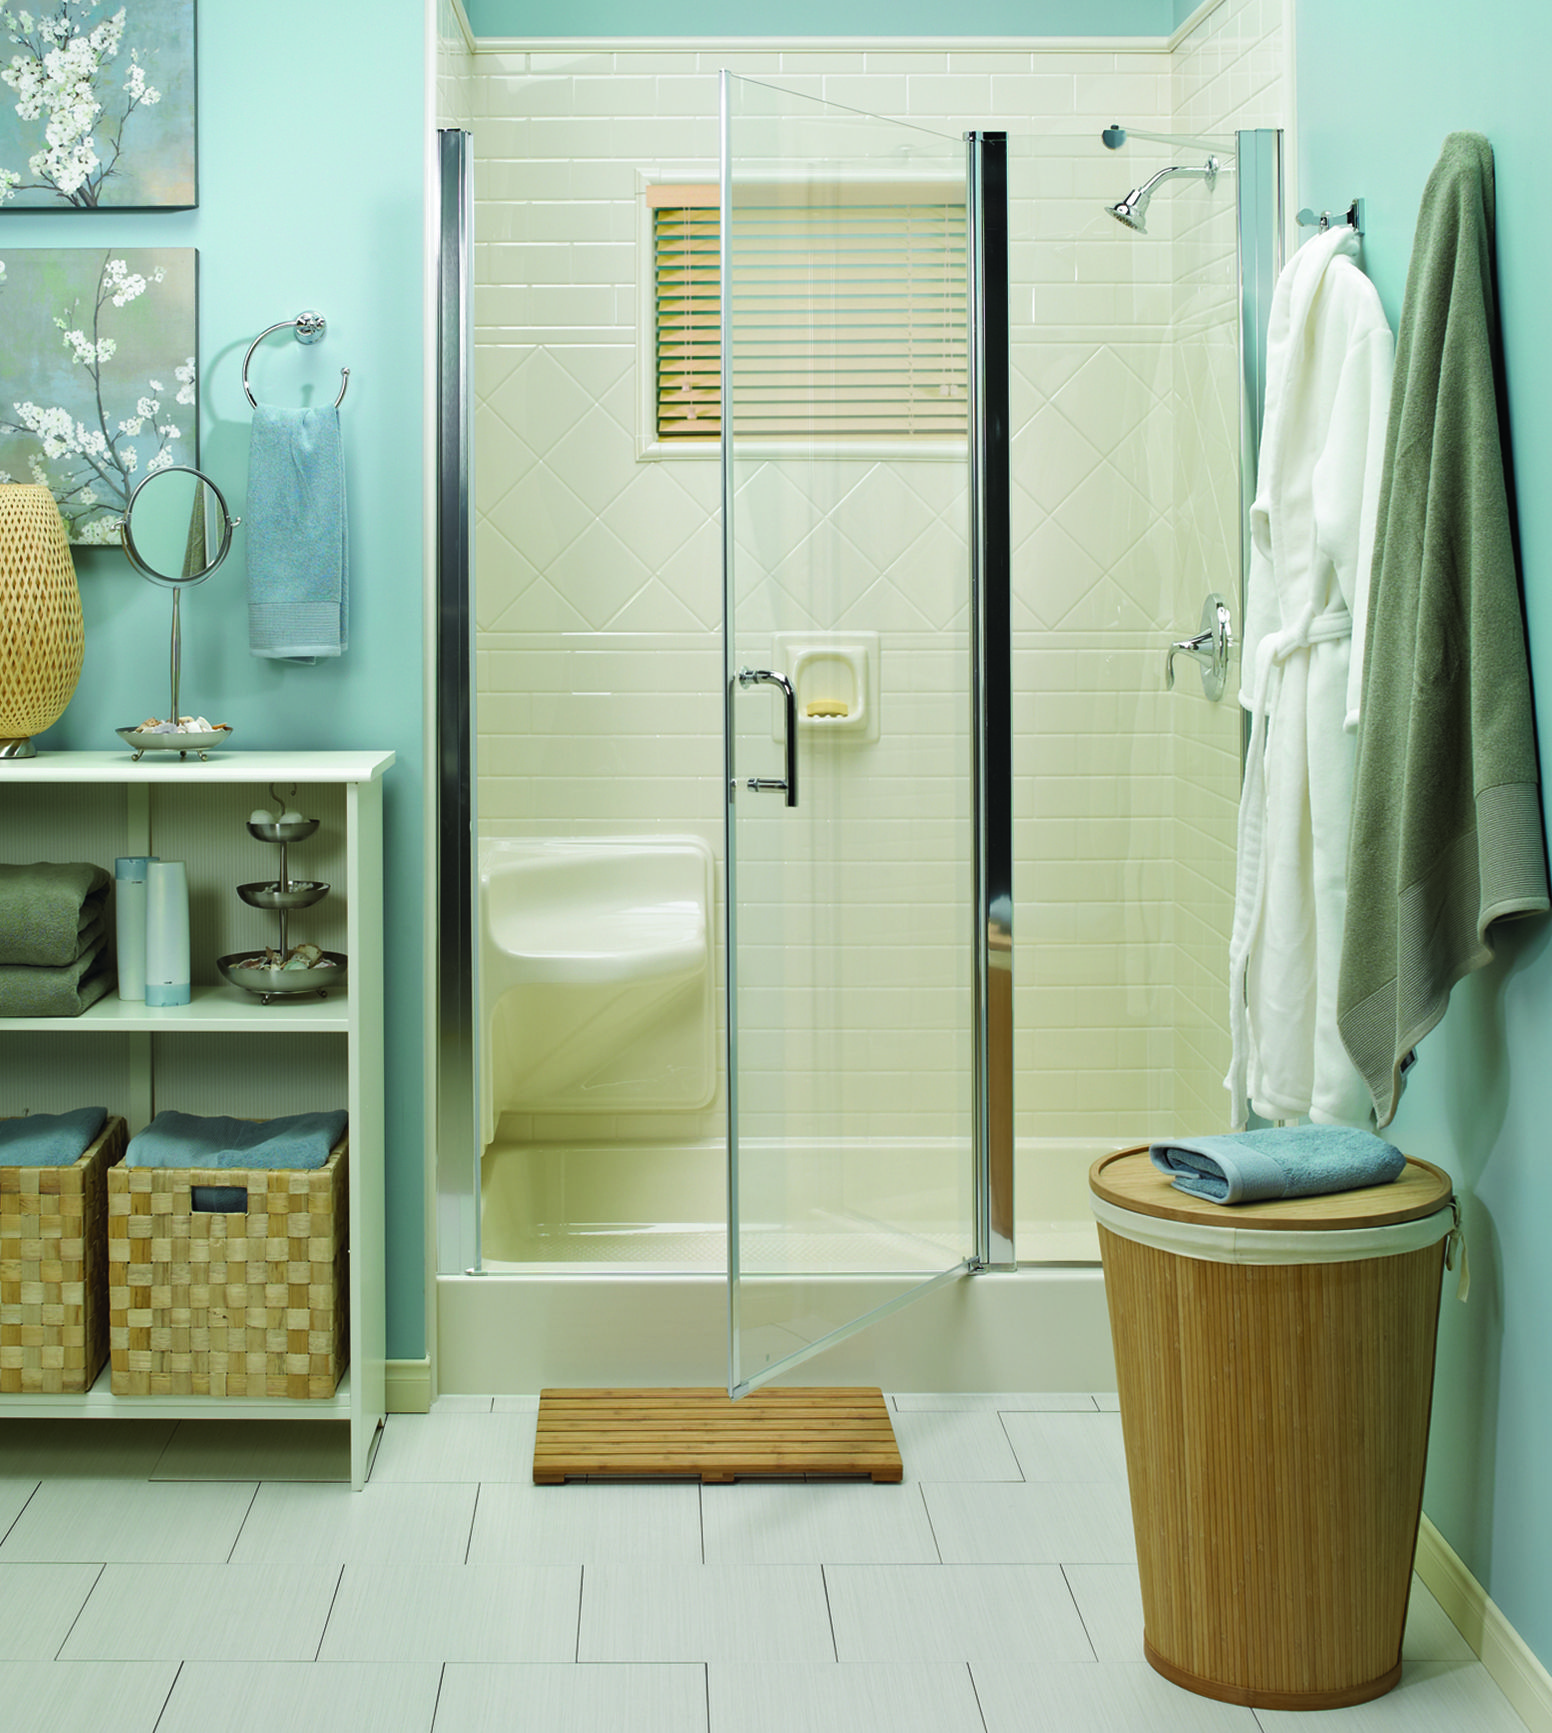 A Bath Fitter Shower Glass Door Can Give Your Bathroom Such A - Bath fitters for the bathroom